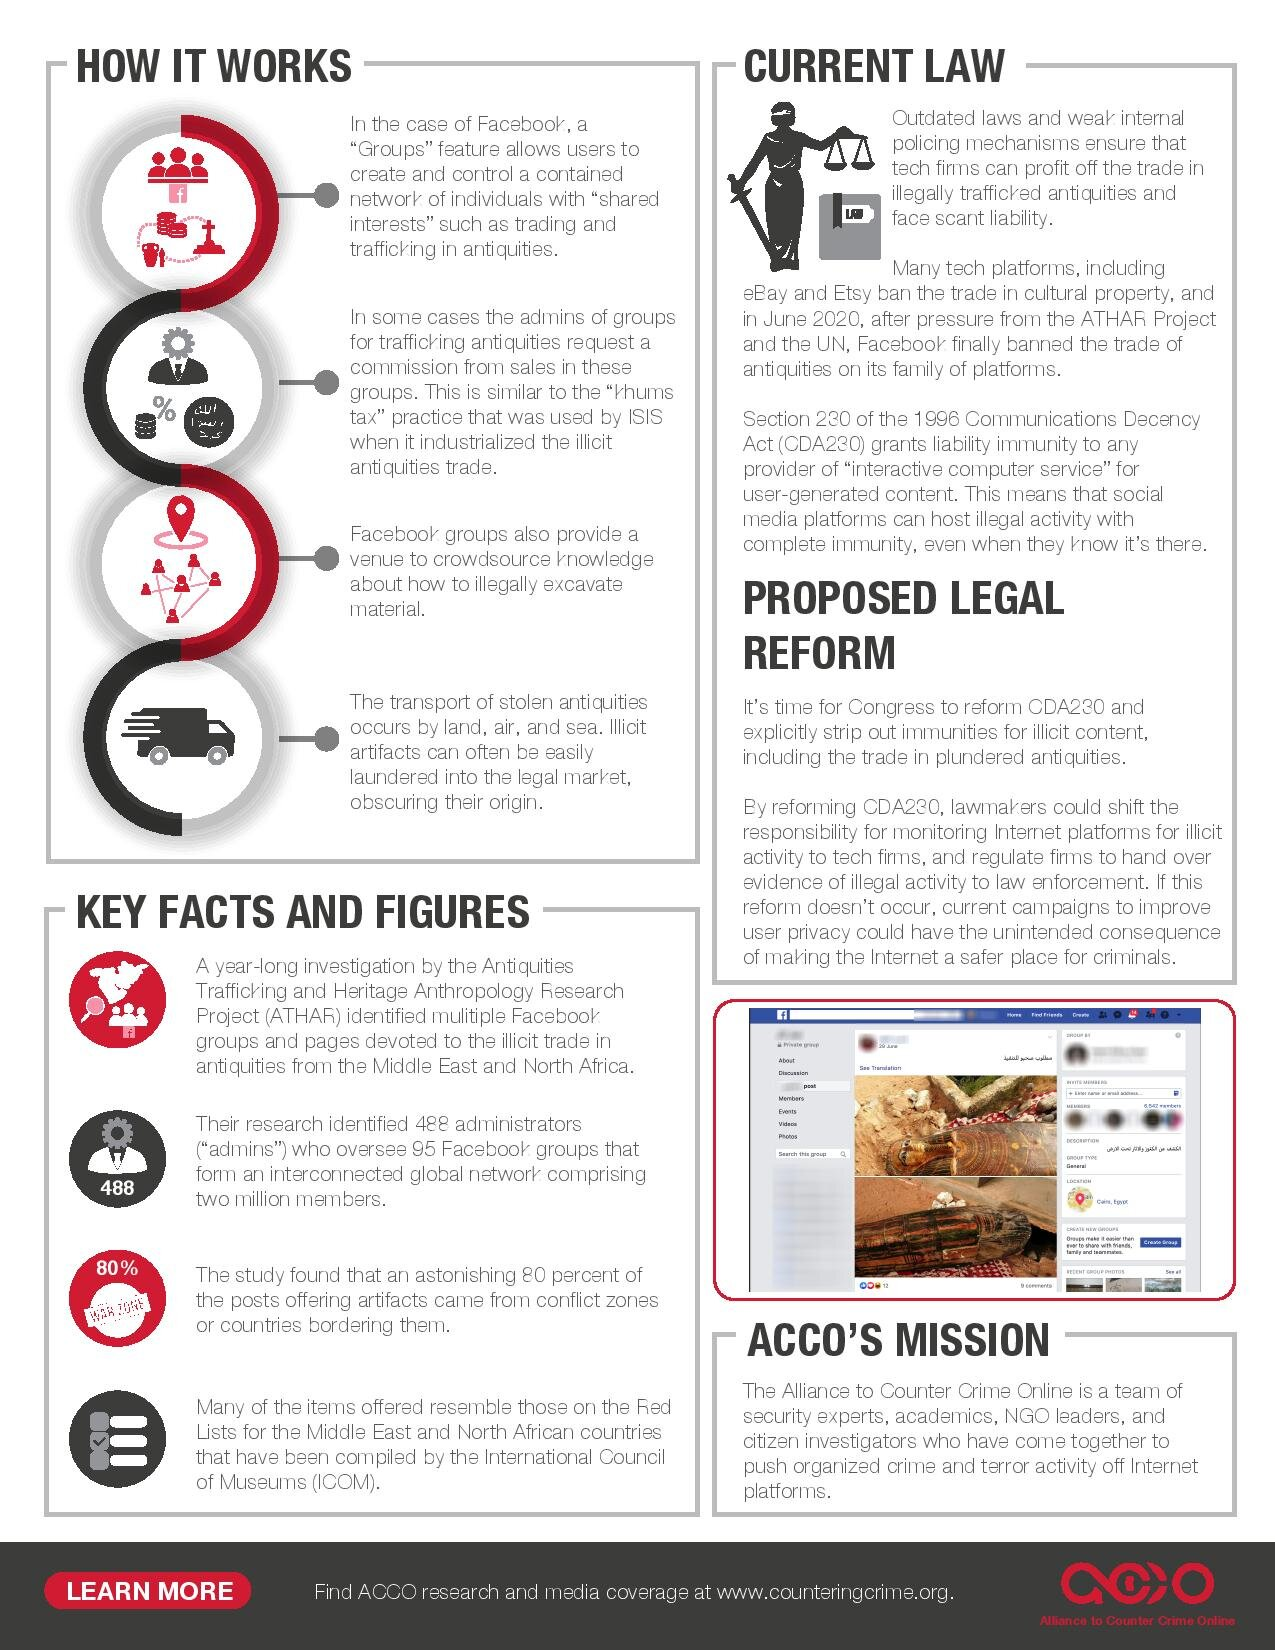 Image: Plundered Heritage: The Antiquities Trade on Social Media, Fact Sheet 2, Alliance to Counter Crime Online